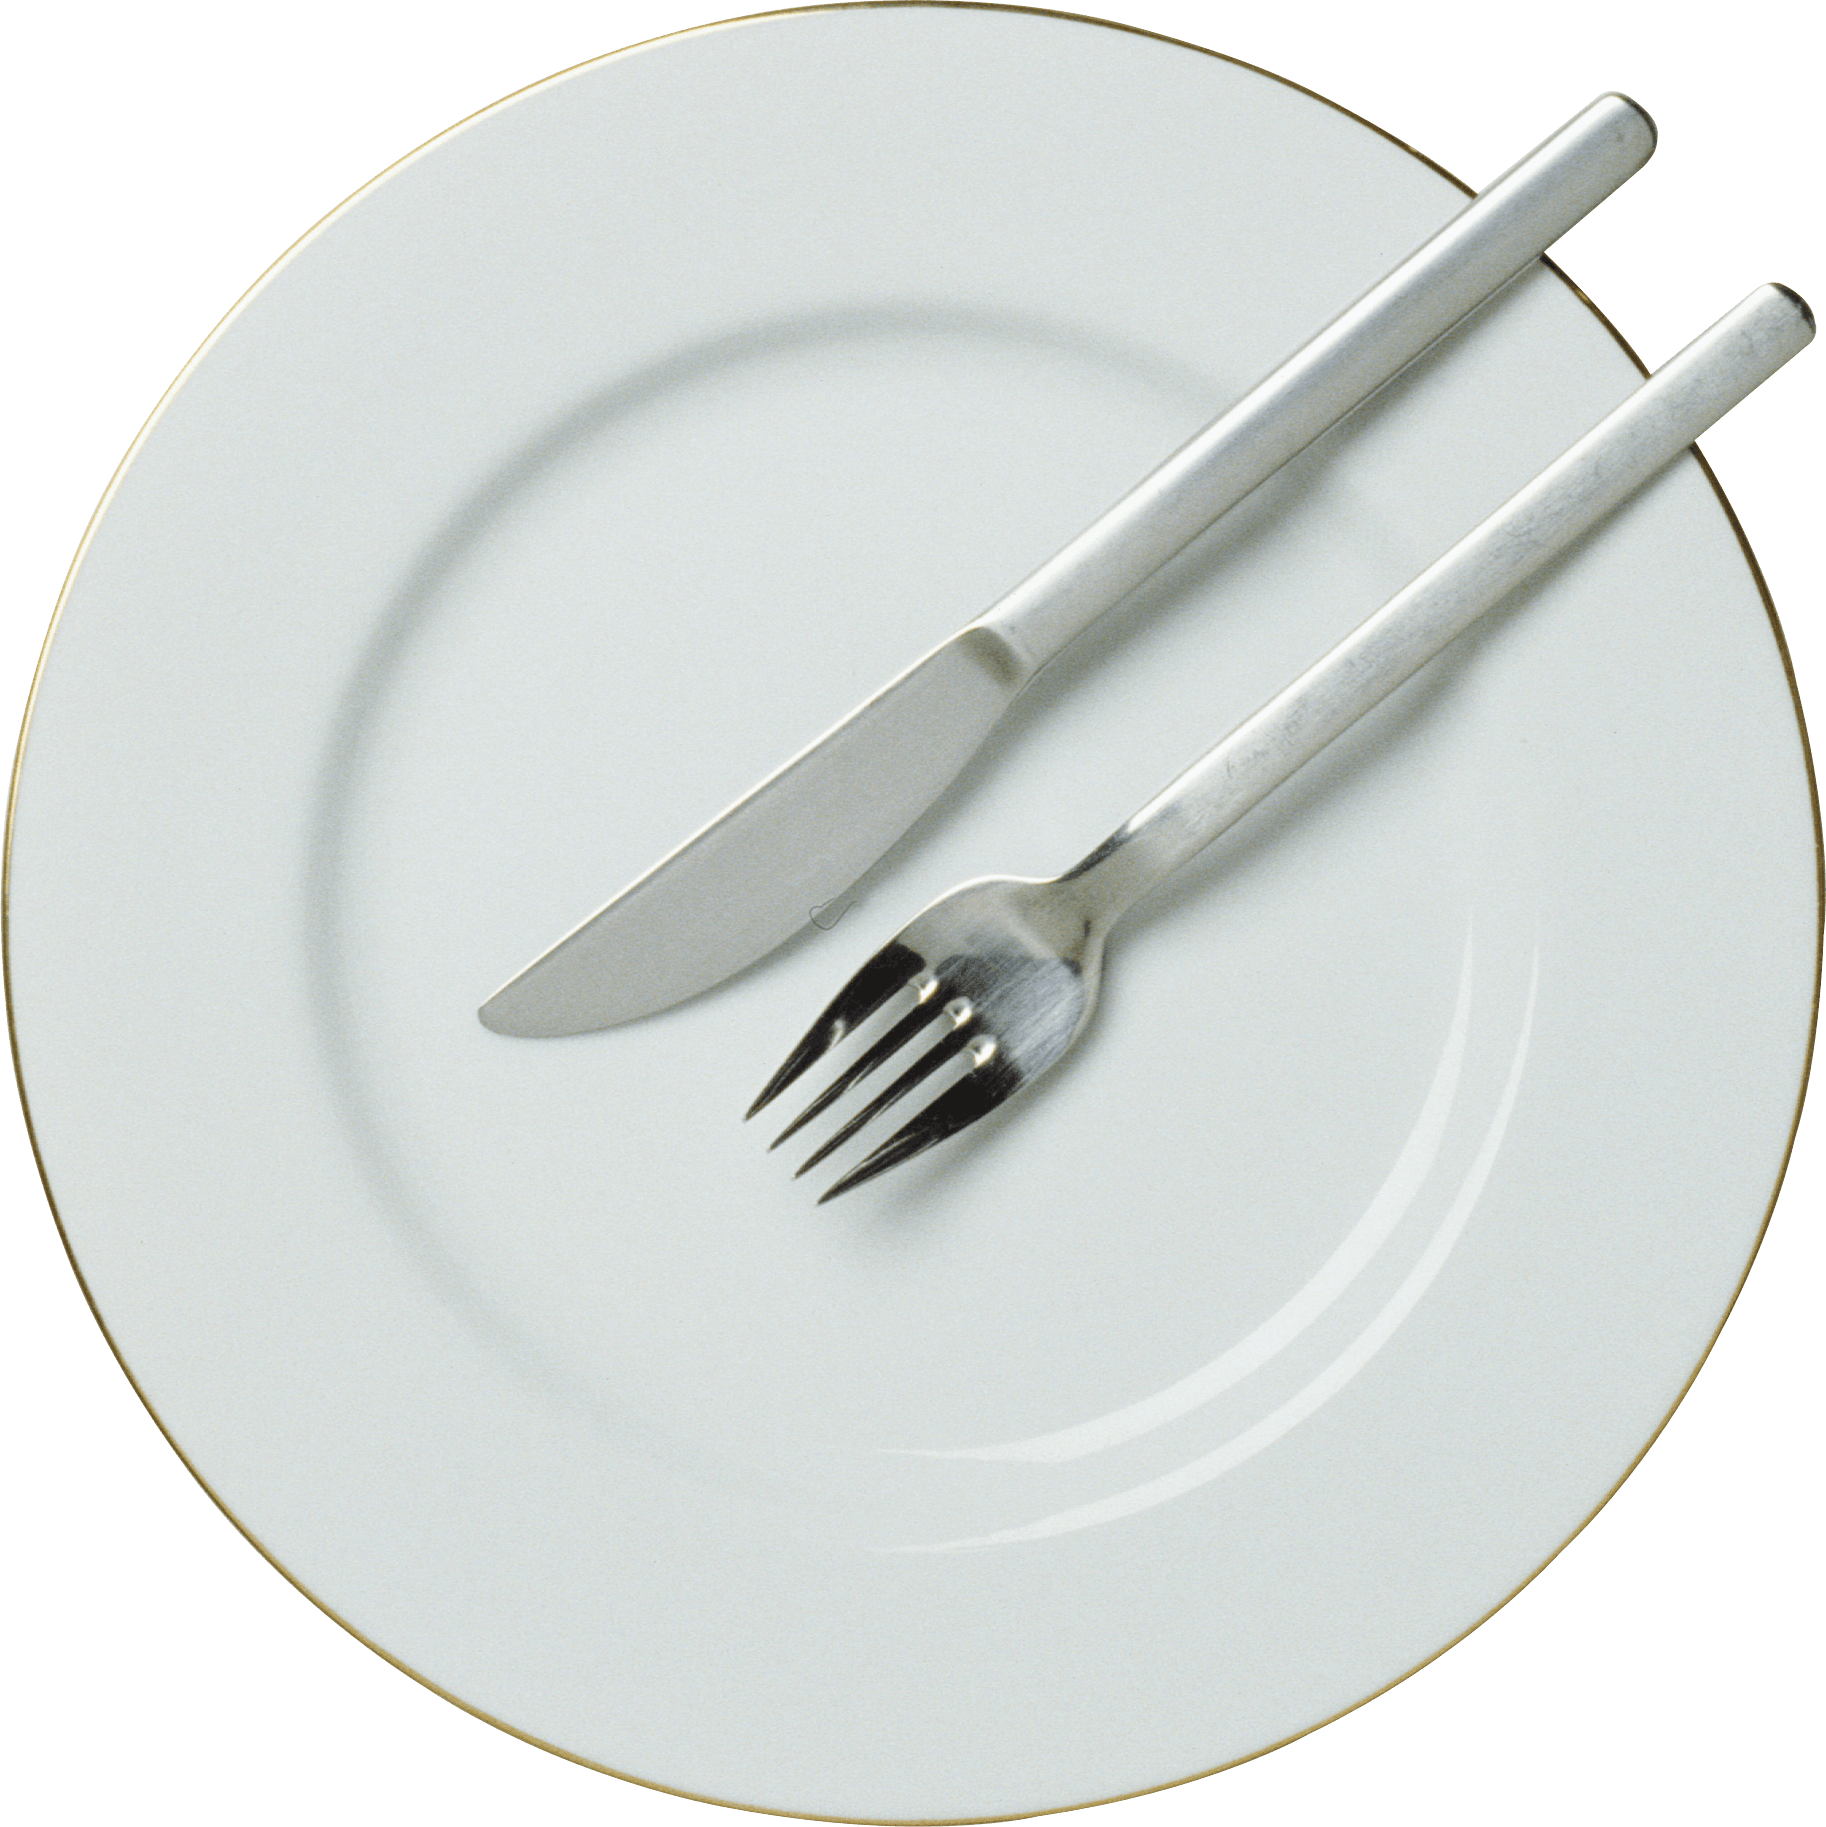 download plate png image png image pngimg #15096